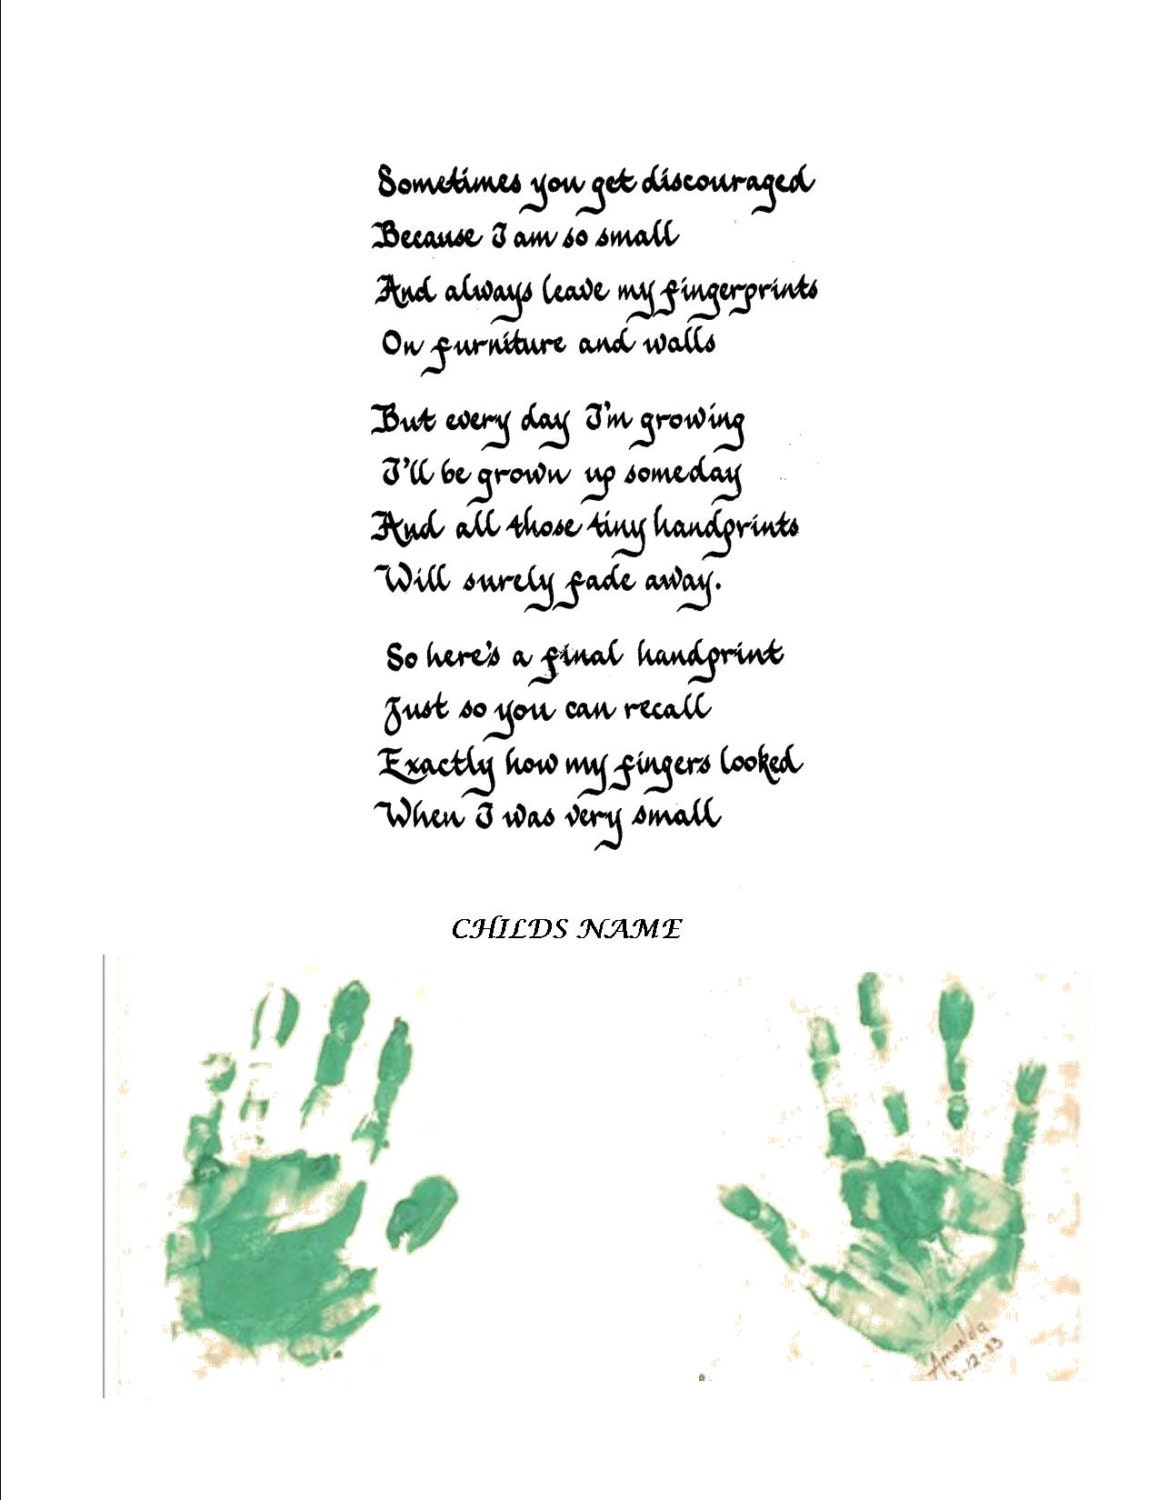 Calligraphy Handprint Poem Ready for Your by CalligraphicArtisan